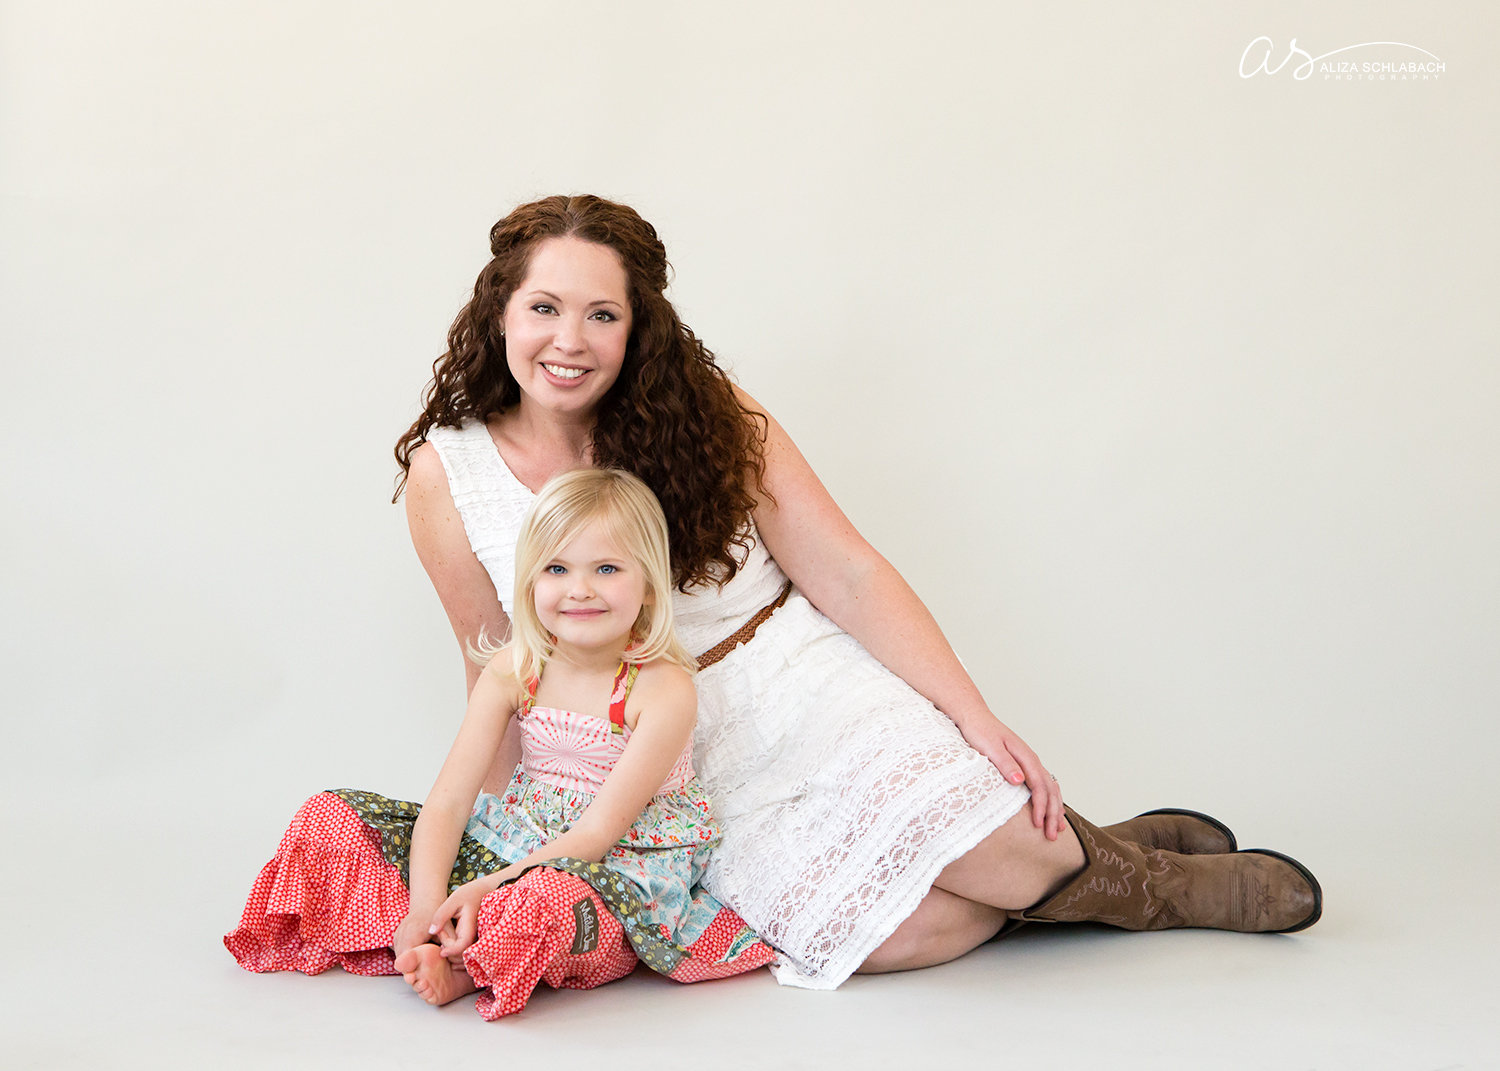 Studio portrait of a mother and her blonde little girl